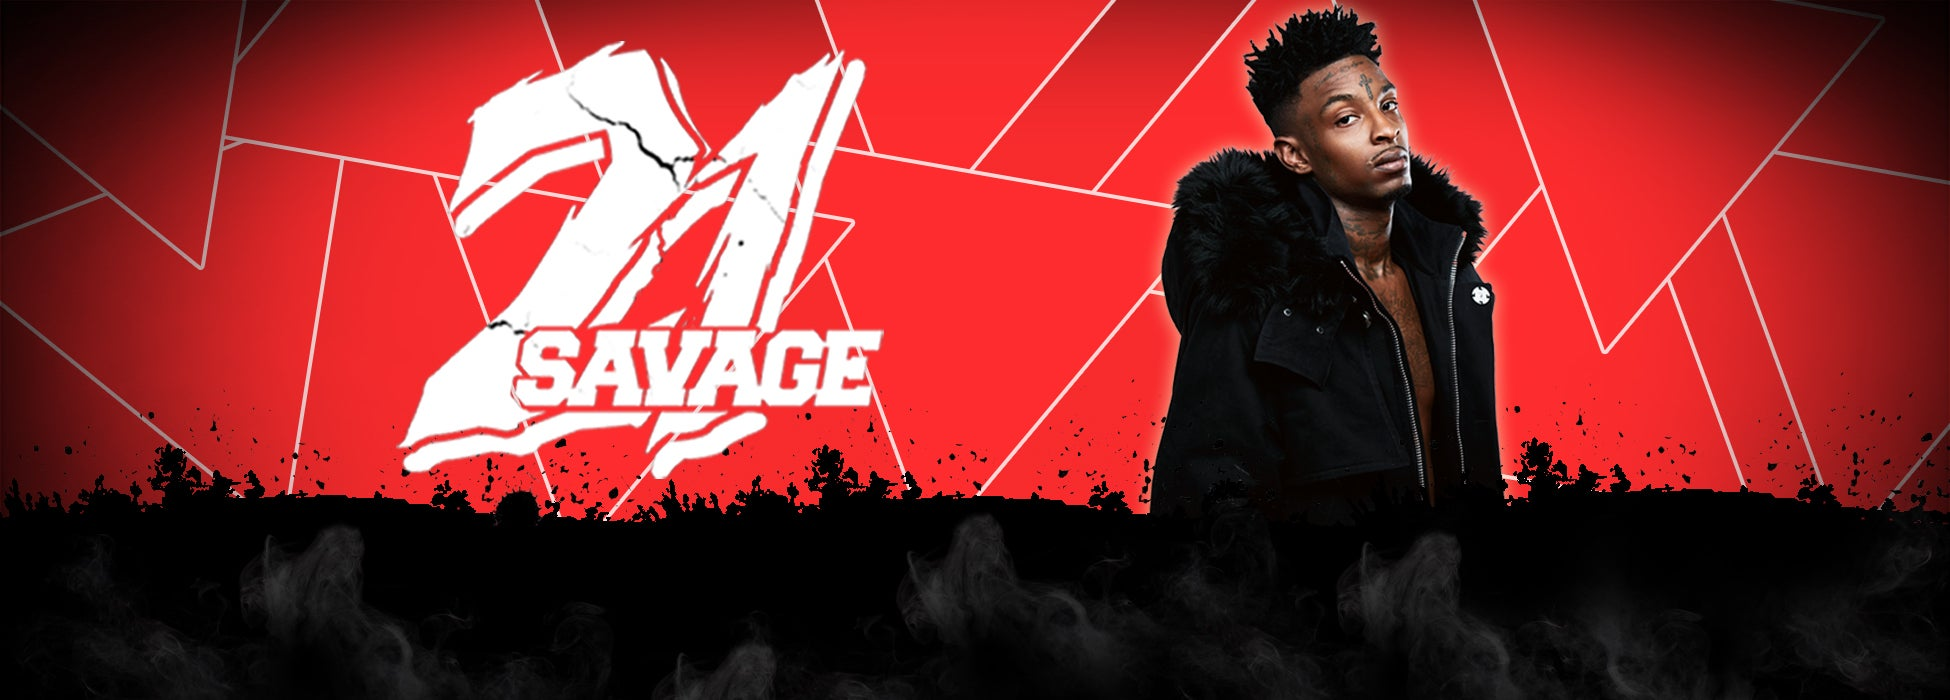 21 savage ted constant convocation center norfolk virginia